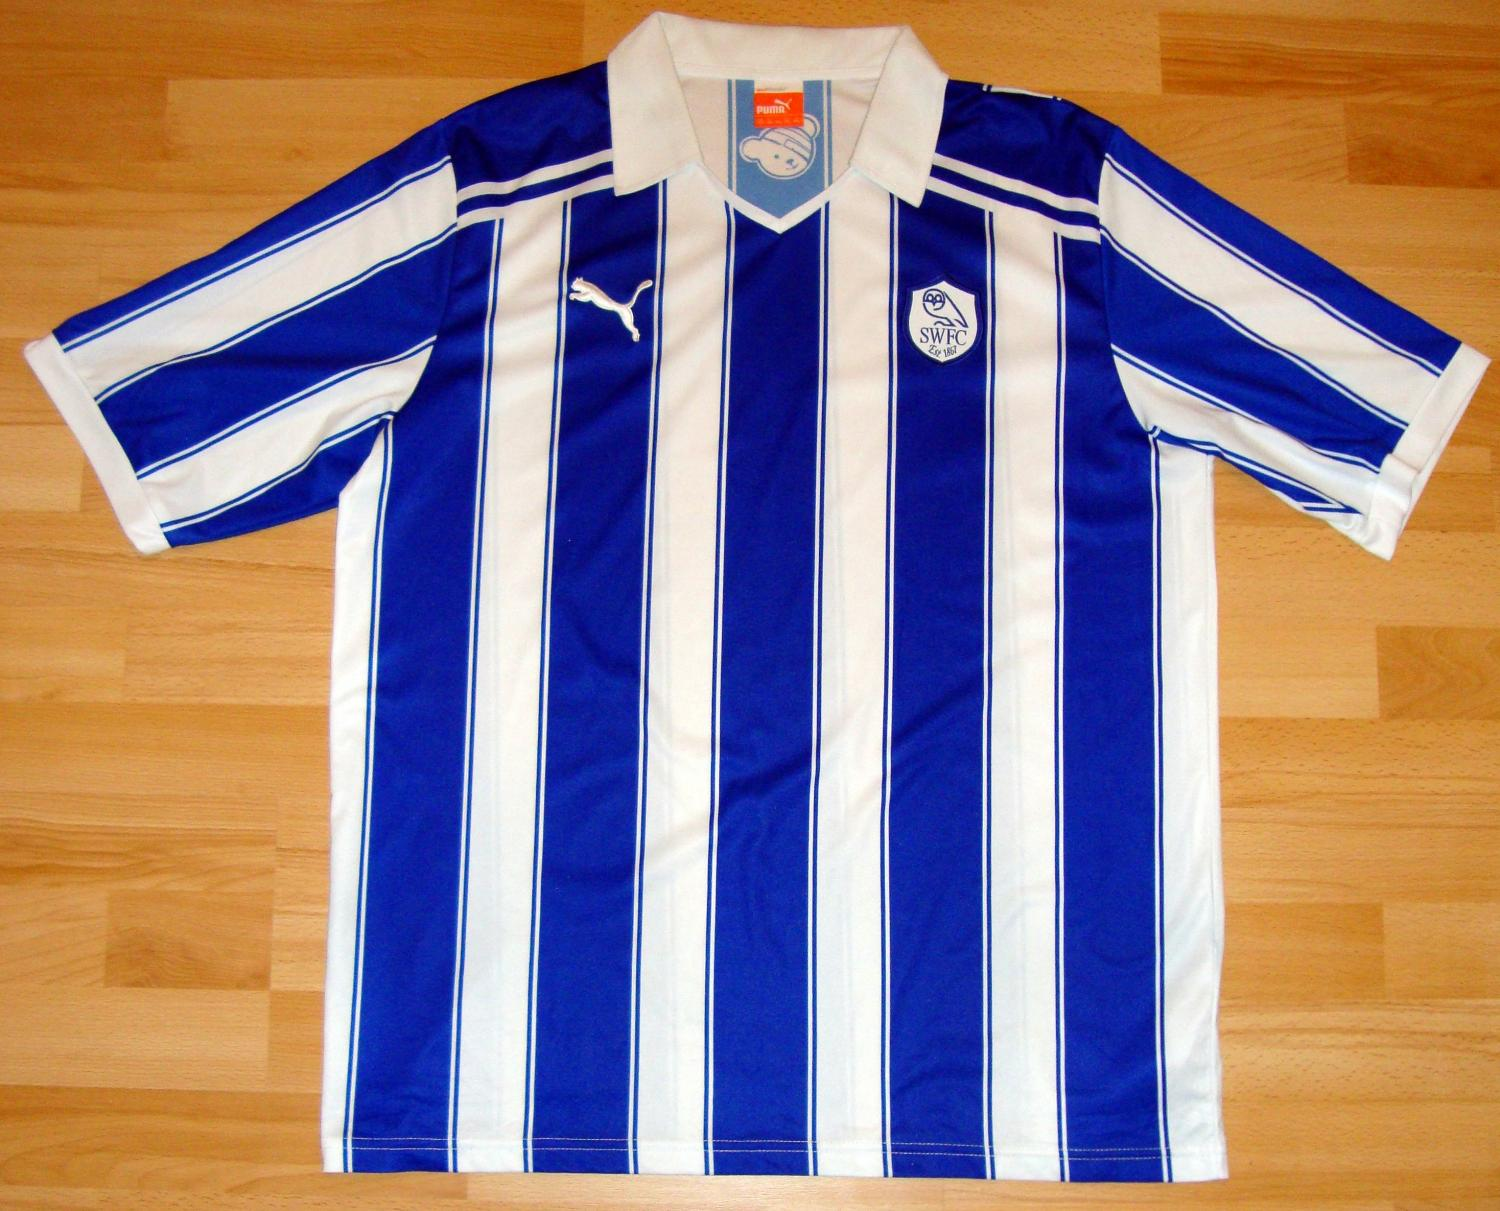 Chùm ảnh: Sheffield Wednesday jersey (14)